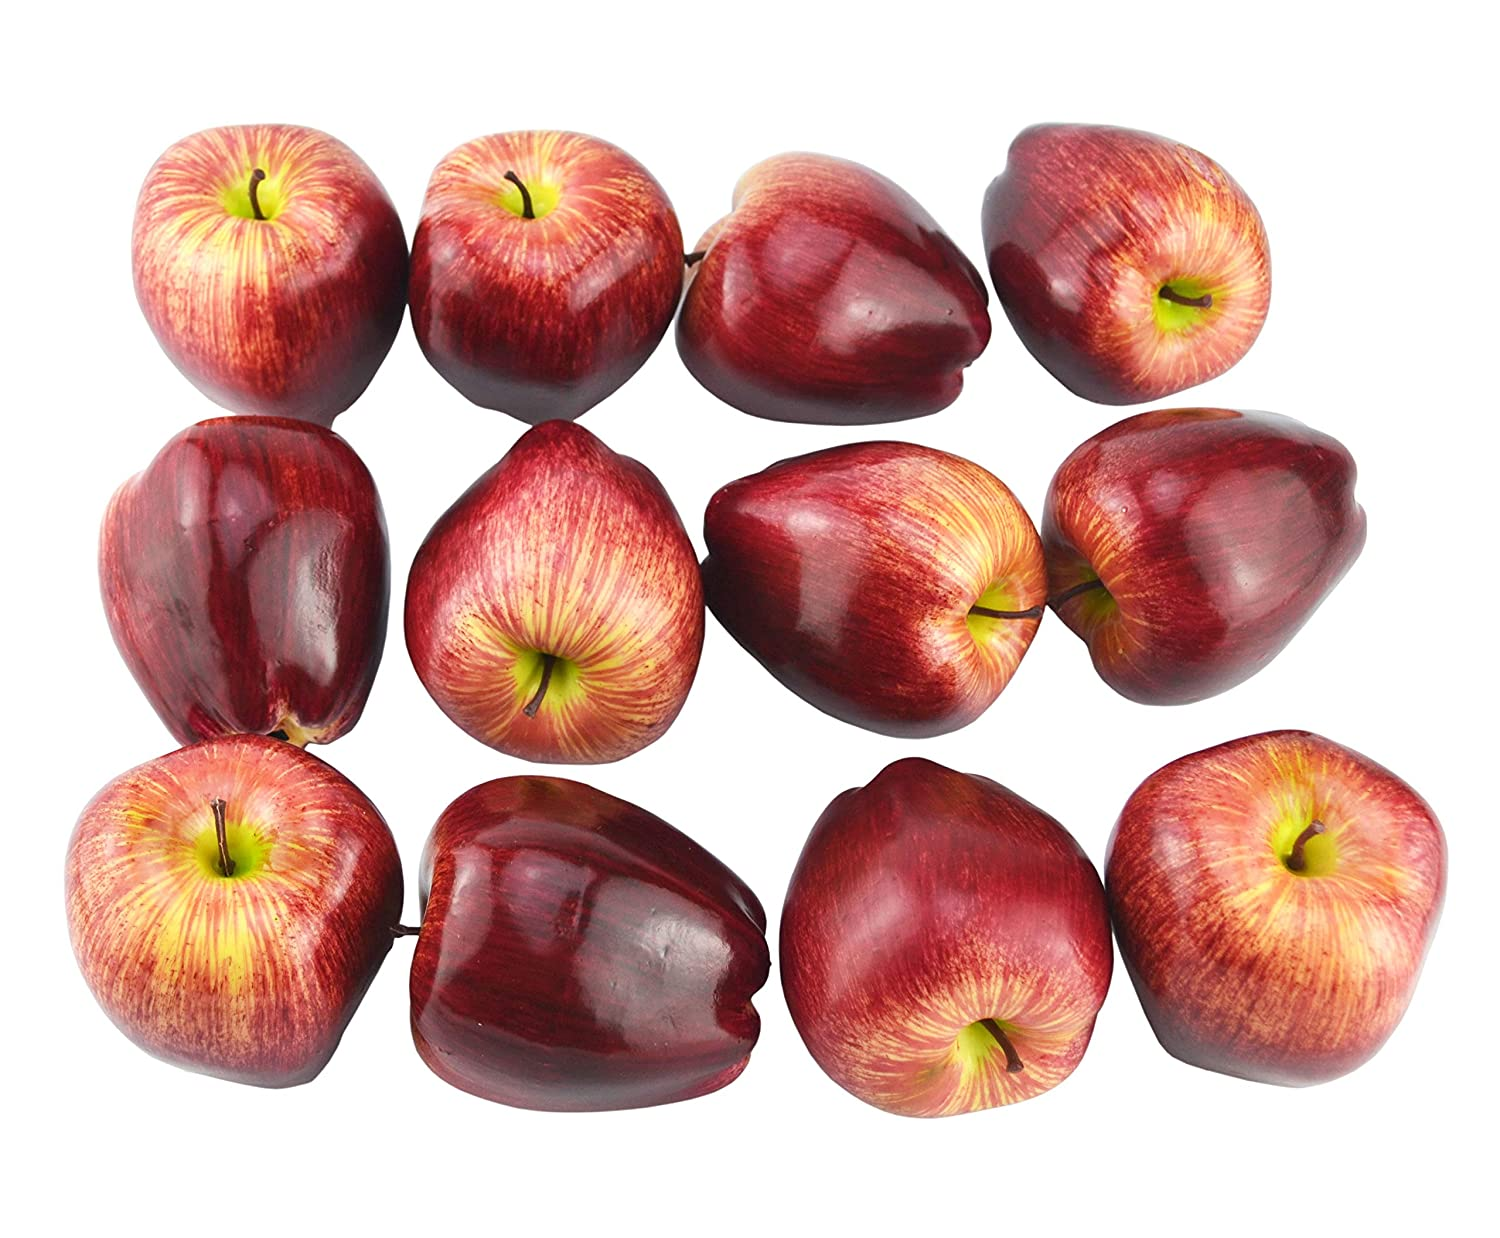 JEDFORE Artificial Lifelike Fake Dark Red Apple Simulation Red Delicious Apples Set Fake Fruit for Home House Kitchen Wedding Party Decoration Photography - Set of 12